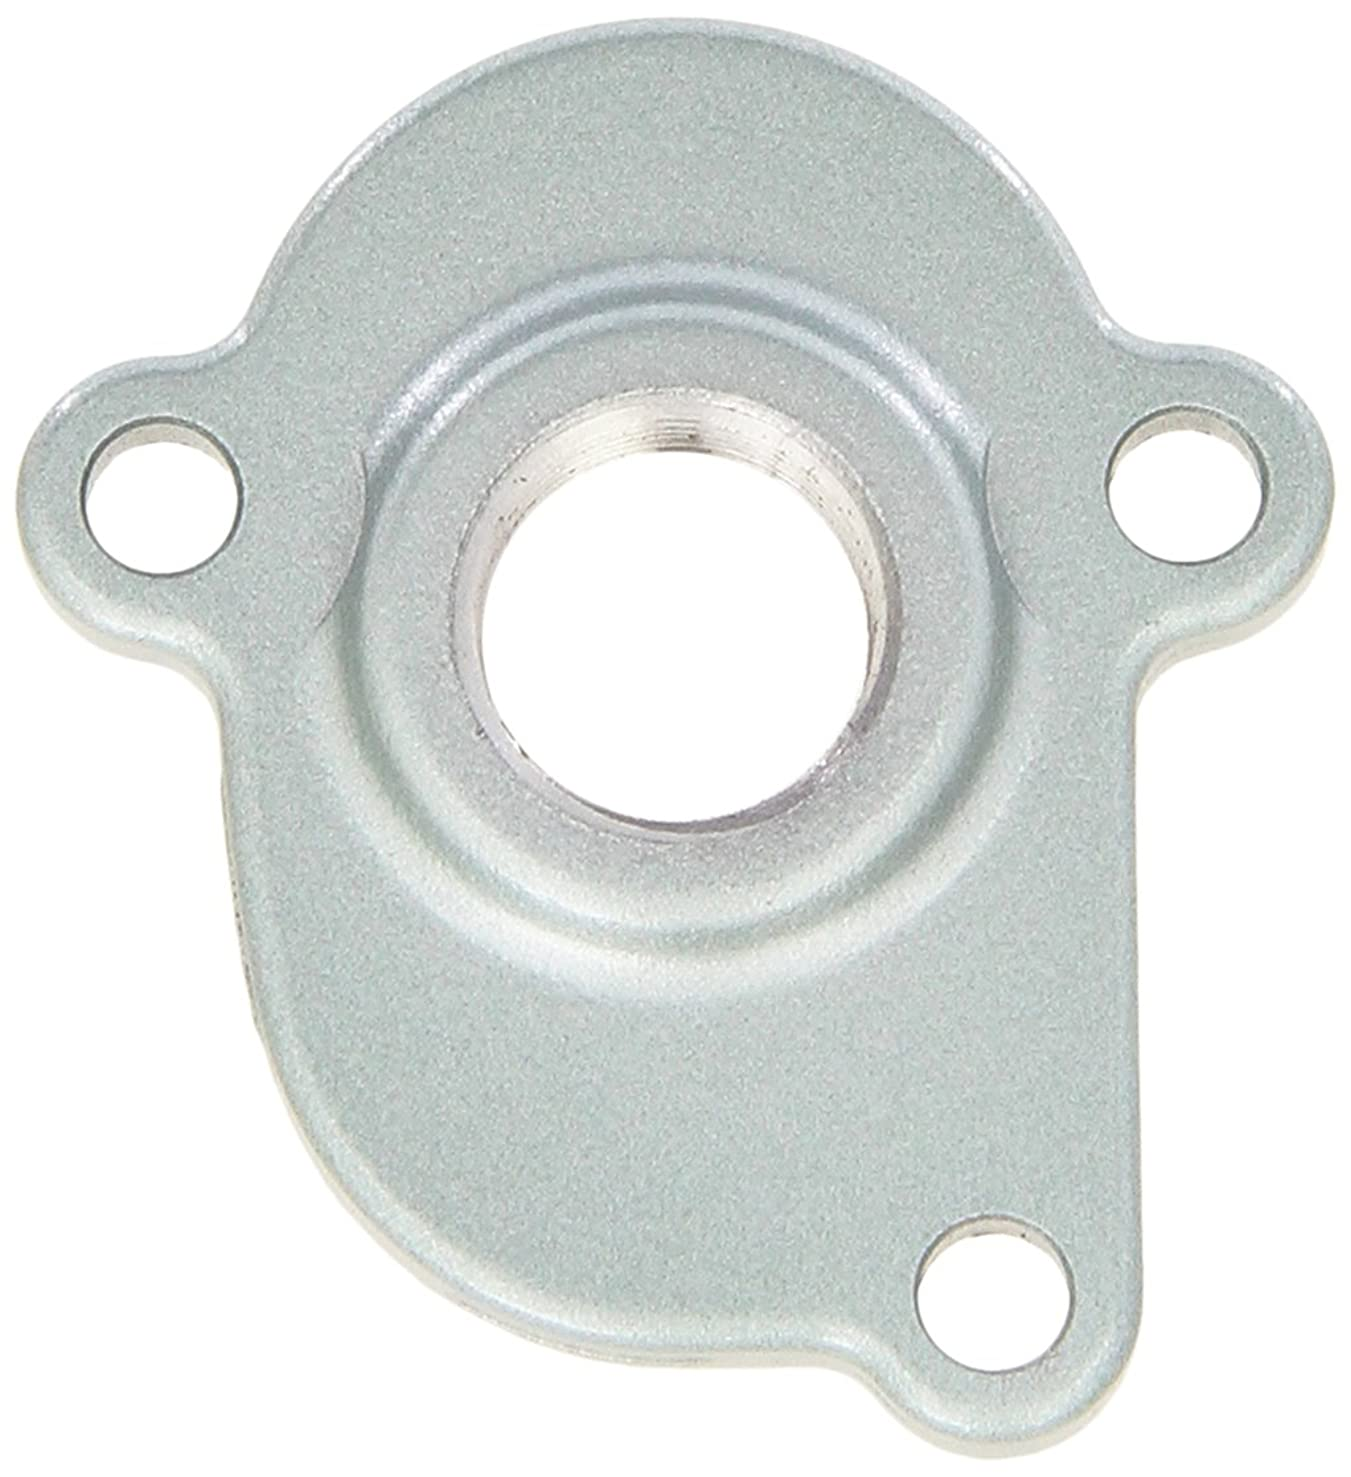 Hitachi 880036 Replacement Part for Power Tool Cap